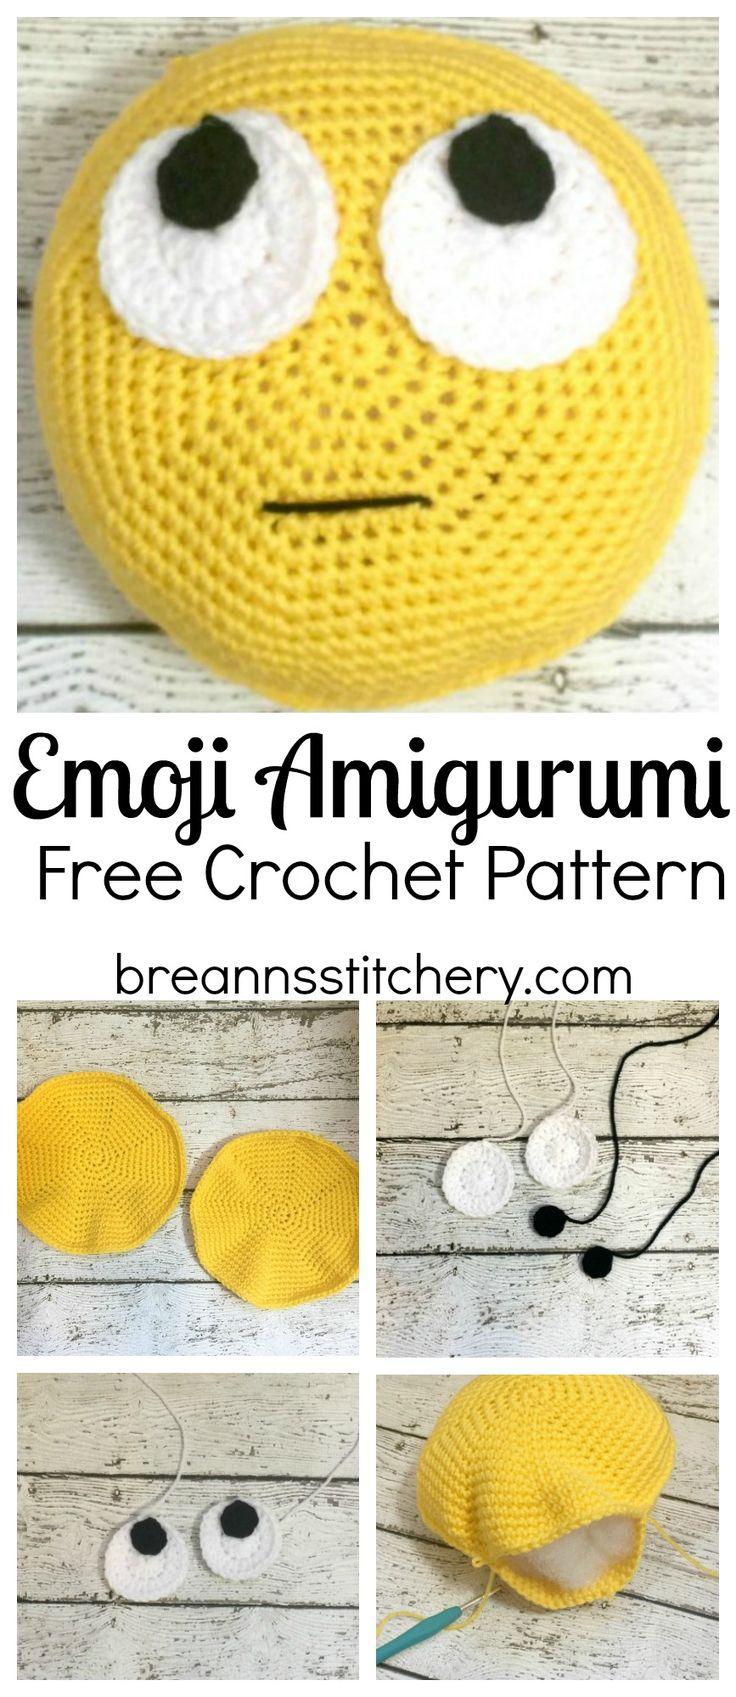 This Emoji Amigurumi Pattern is an easy pattern for a beginner level amigurumi. I am by no means an expert or even seasoned amigurumi crocheter and I found this emoji very doable. I ended up making three of these little stuffies! It was a fun weekend project. This pattern is available as an inexpensive, clearly …